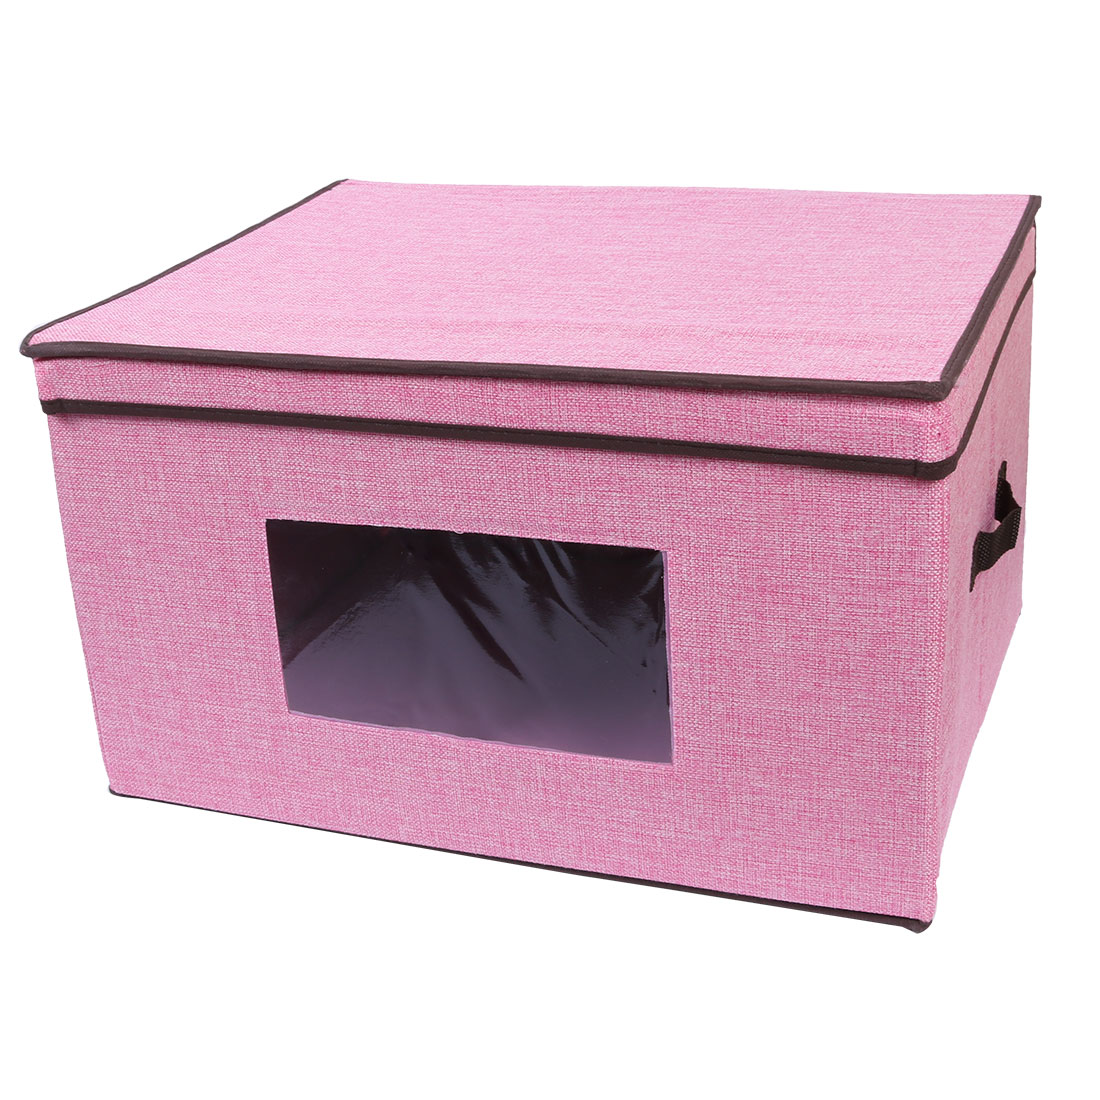 Home Linen Foldable Coat Quilt Book Holder Storage Box Case Pink 50 x 40 x 30cm